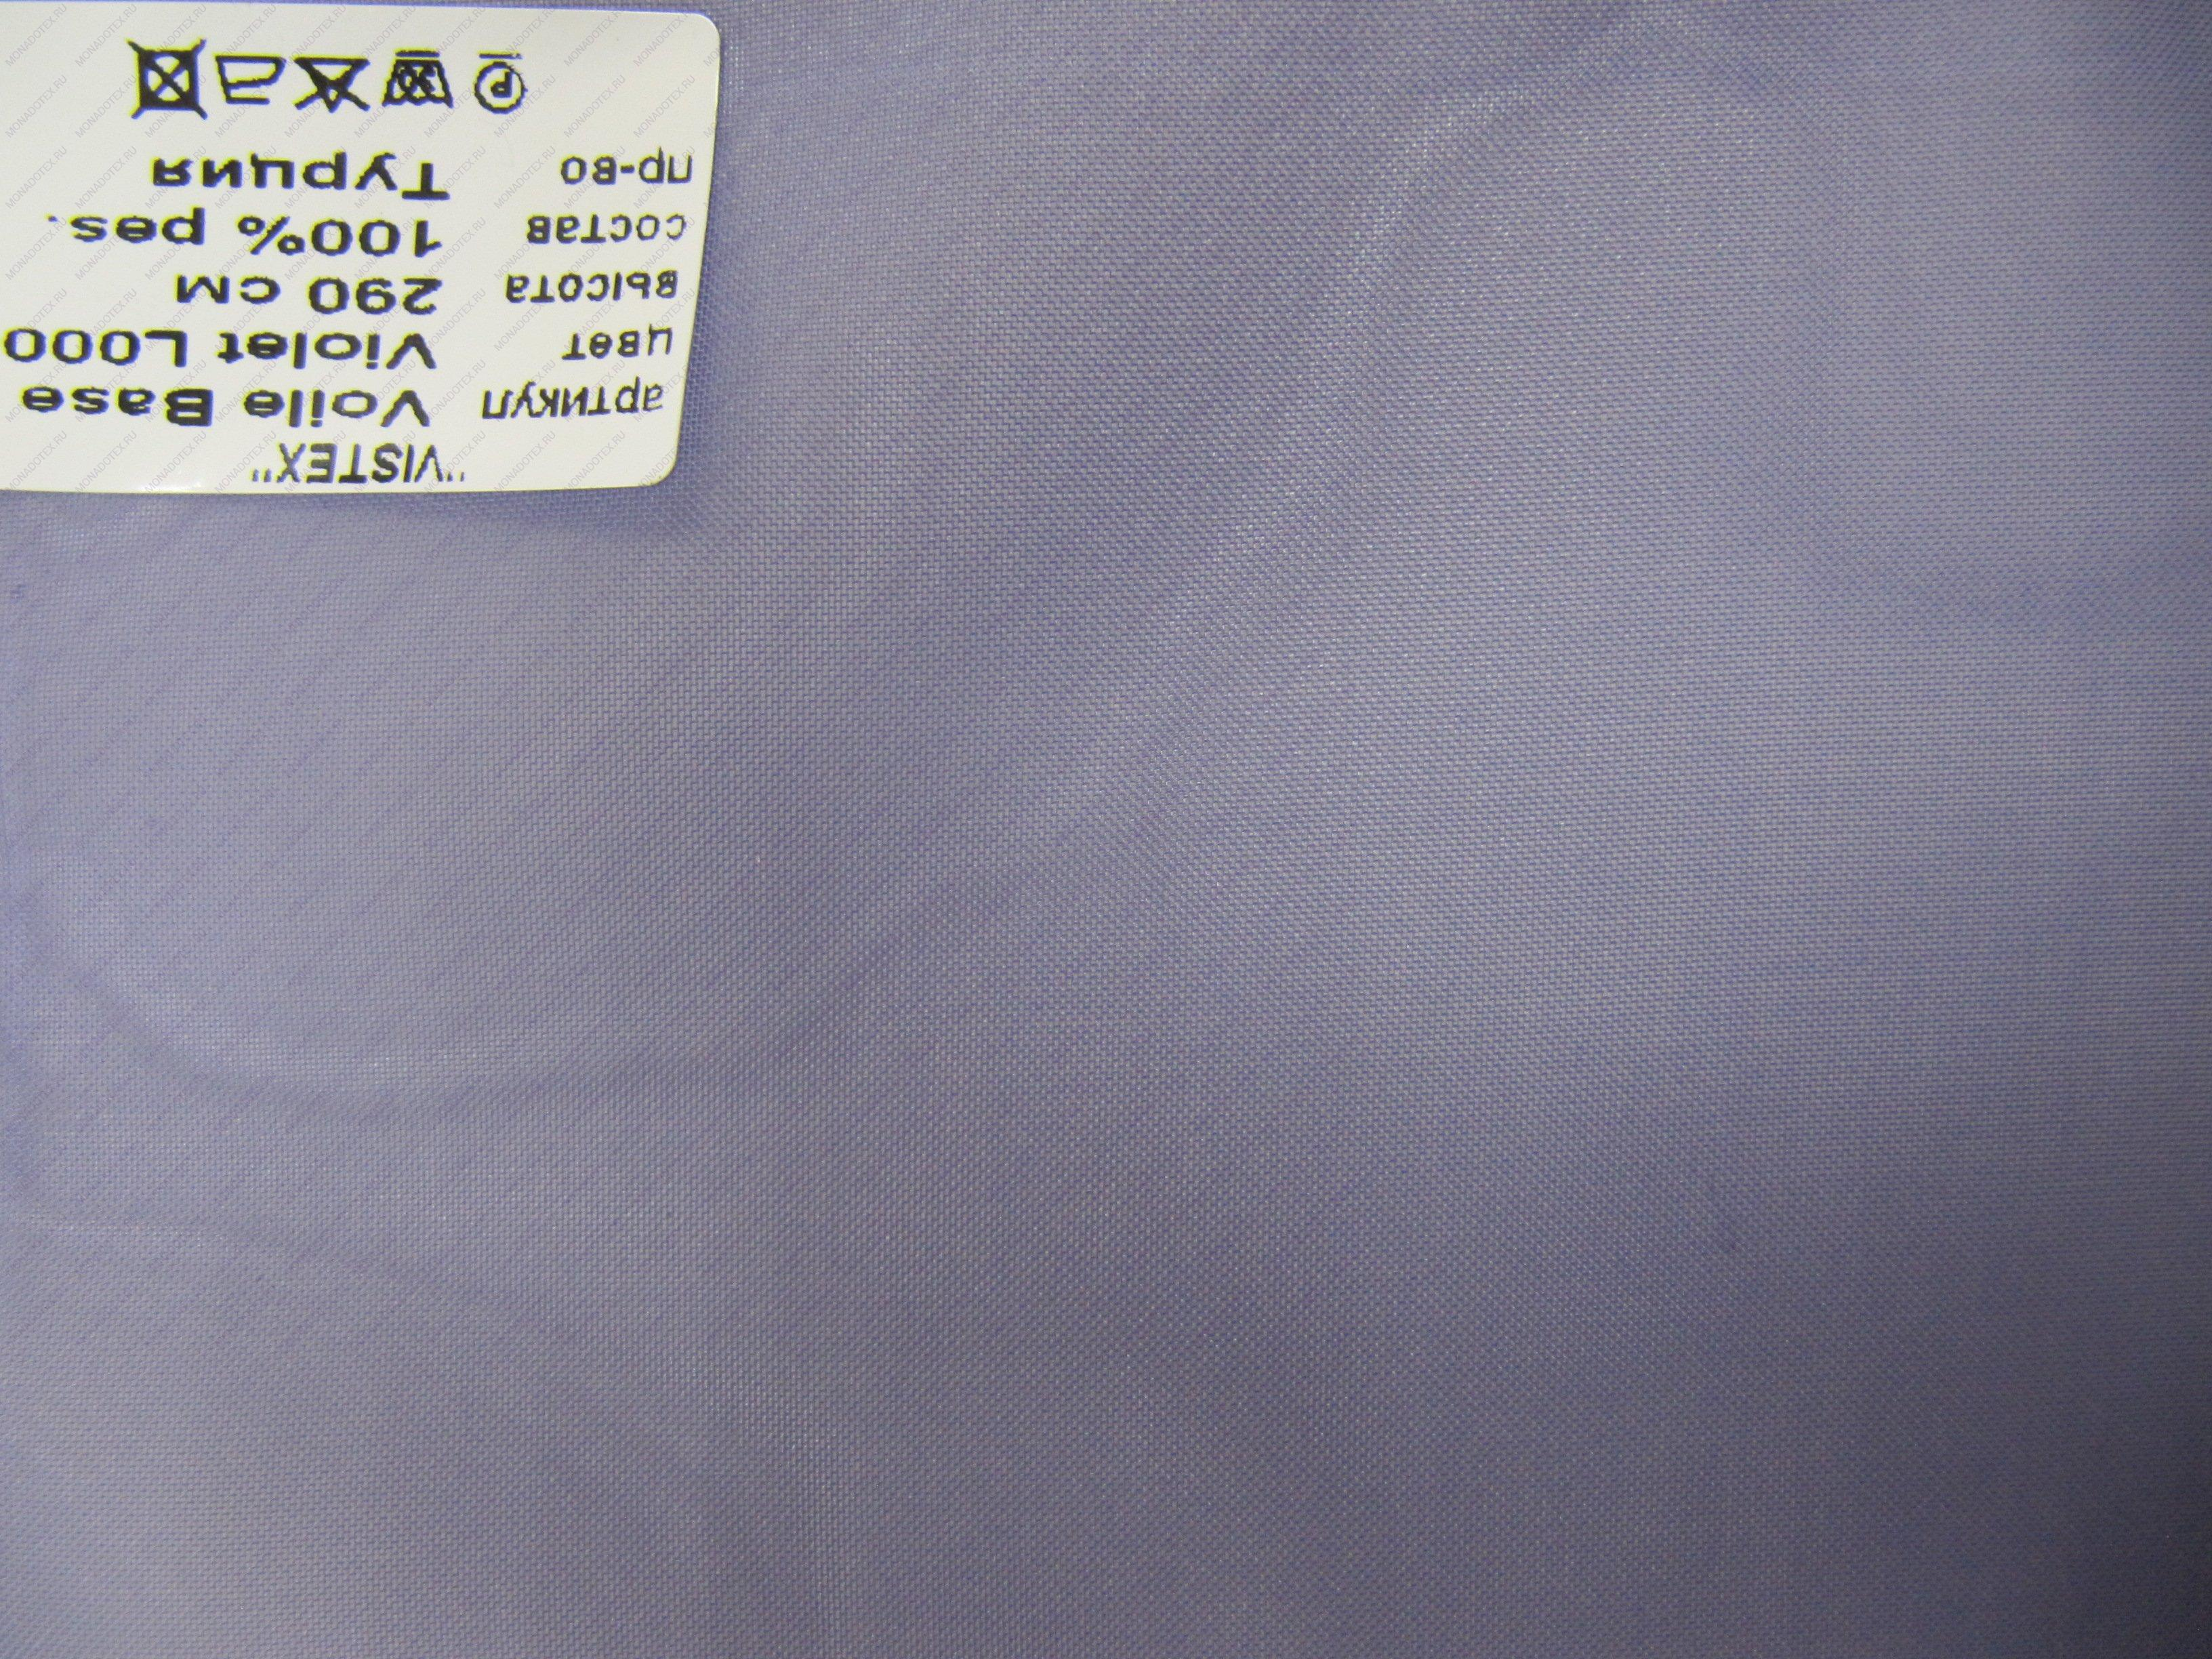 Каталог Артикул VOILE BASE colour Violet L000 VISTEX (ВИСТЕКС)